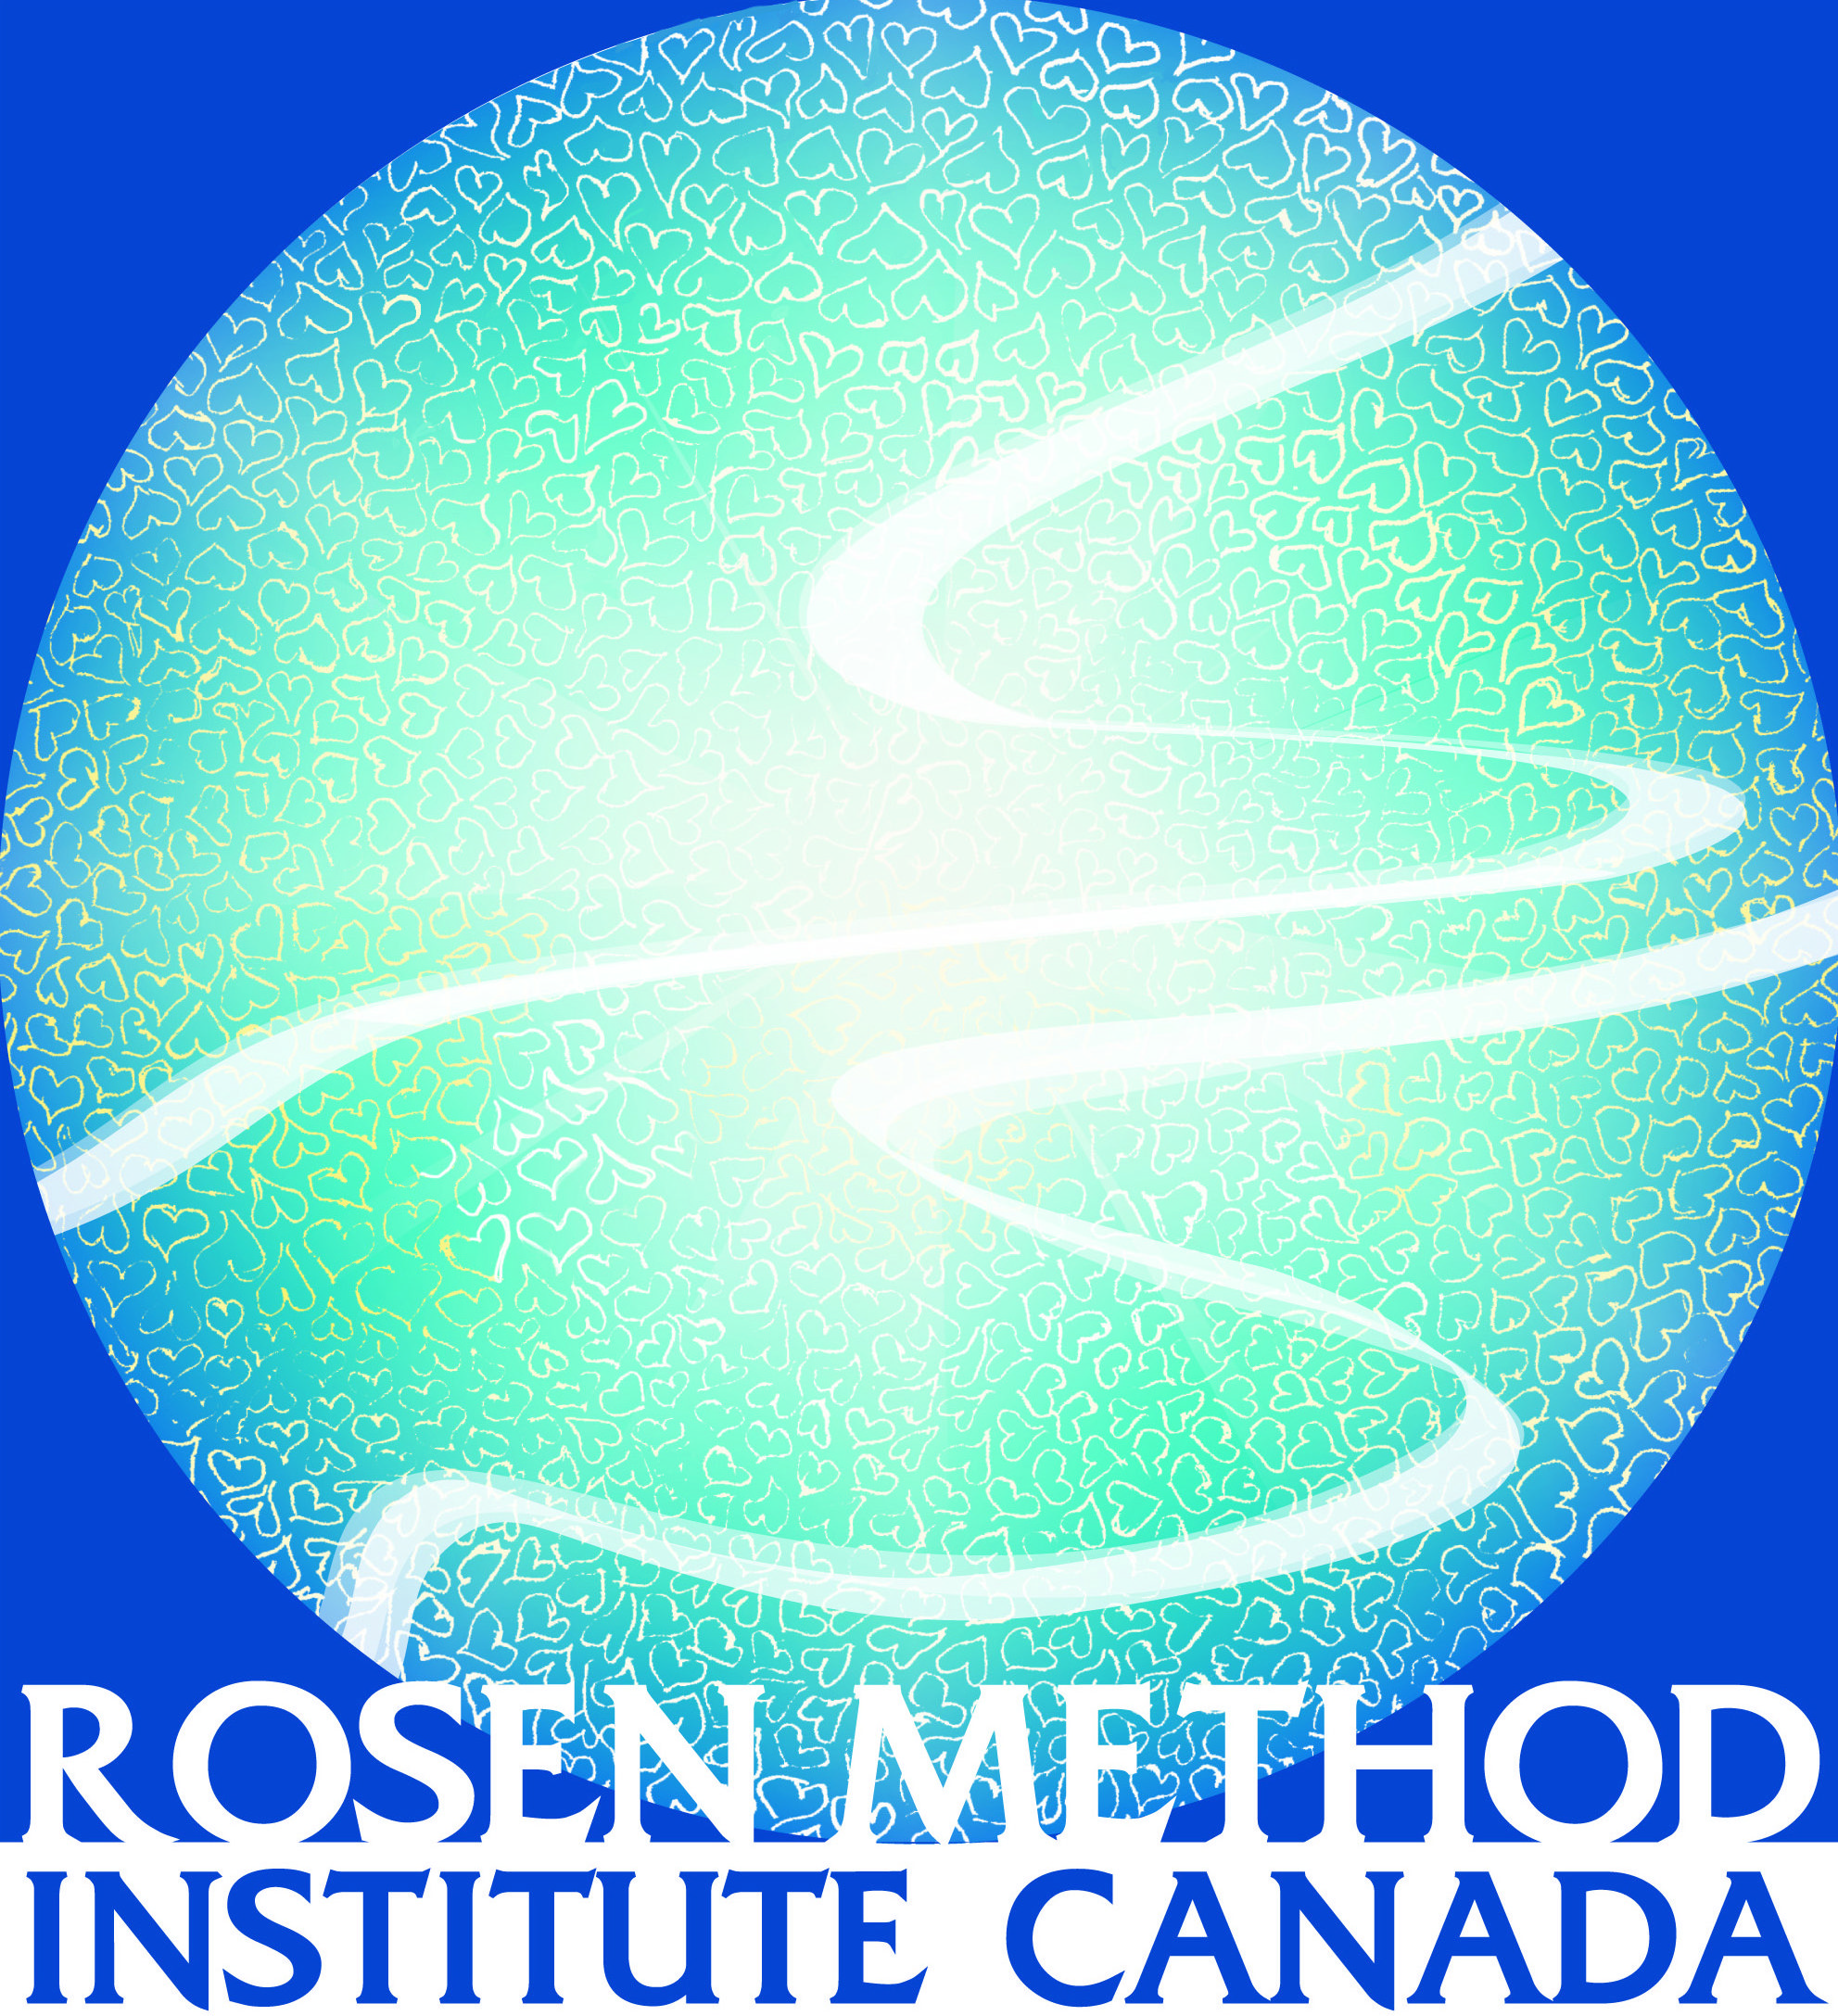 Rosen Method Institute Canada